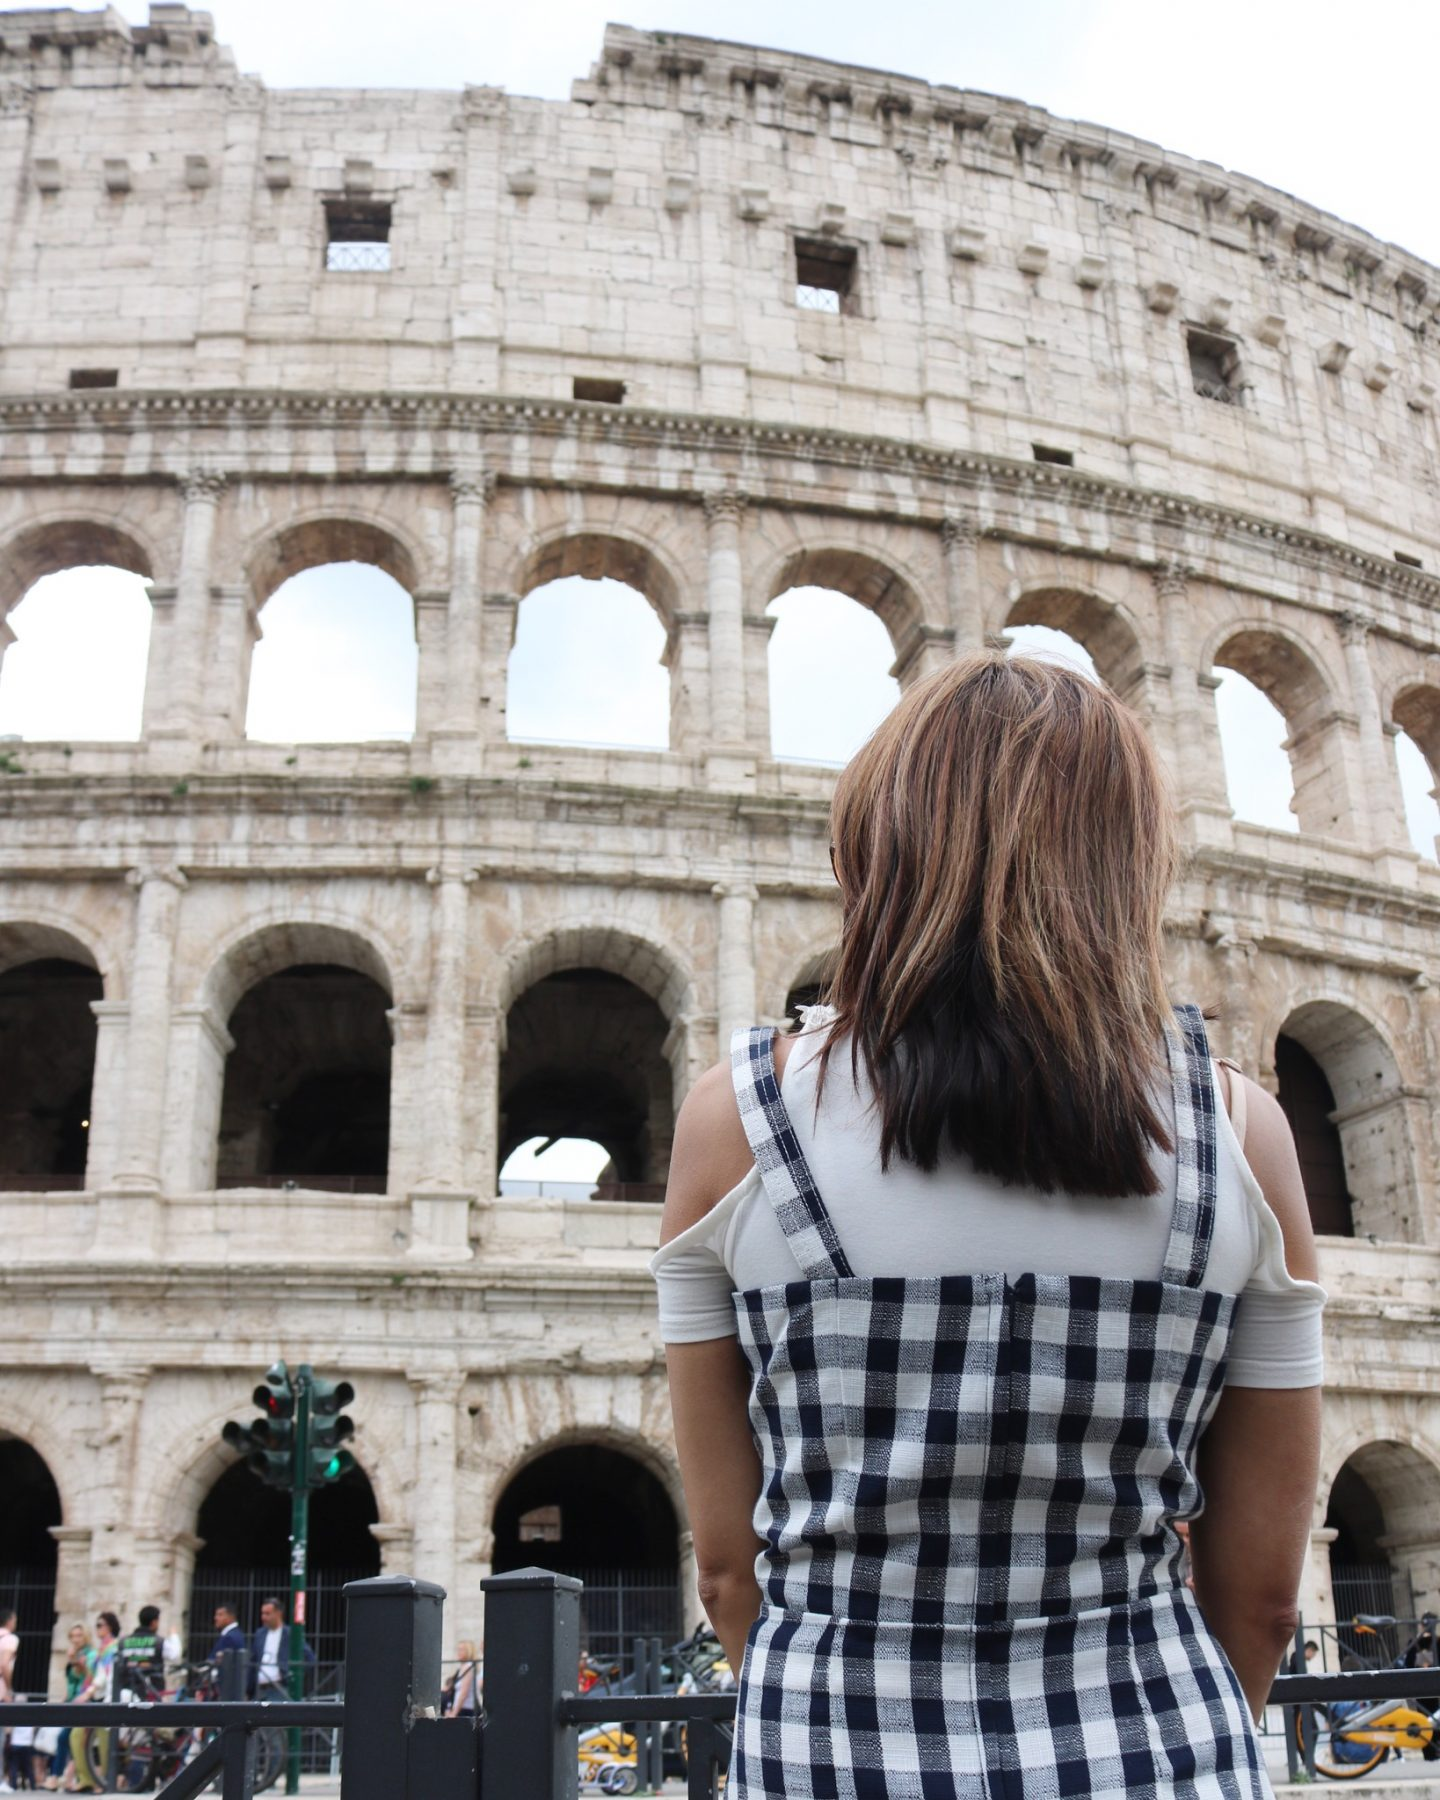 When in Rome…Top 6 places to see in The Eternal City